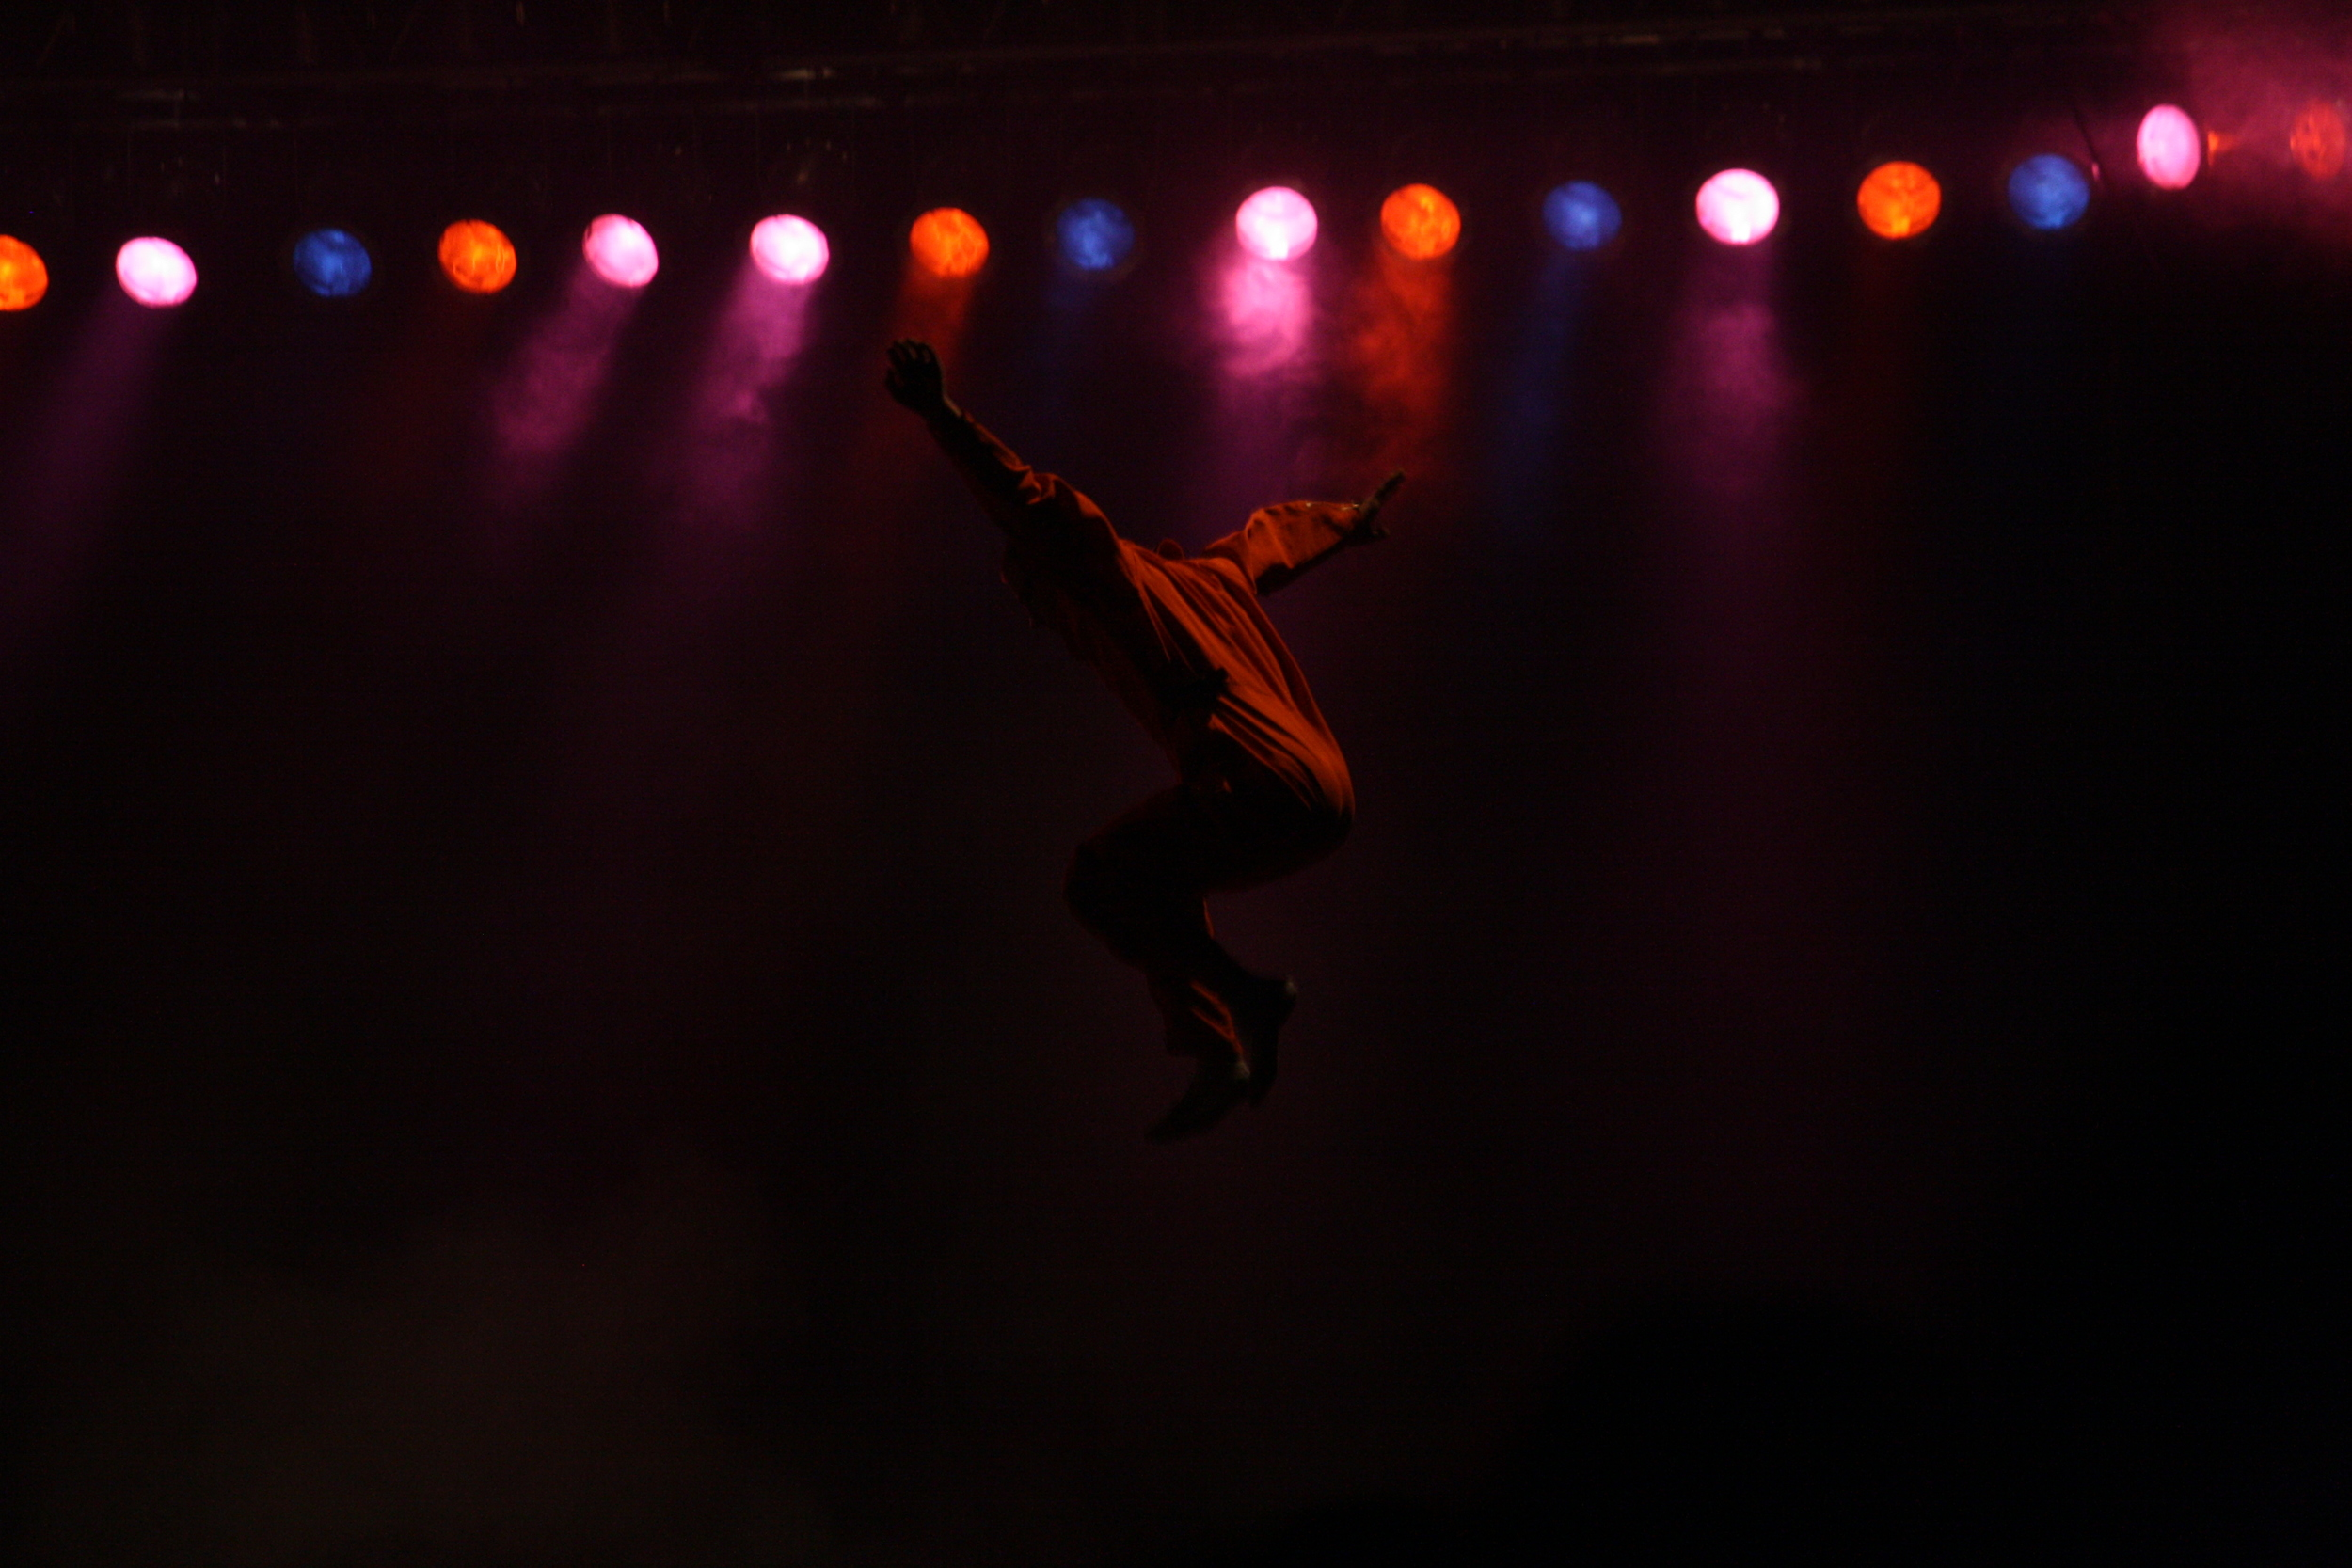 A performer leaps high above the stage at the Three Rivers Arts Festival in Pittsburgh.